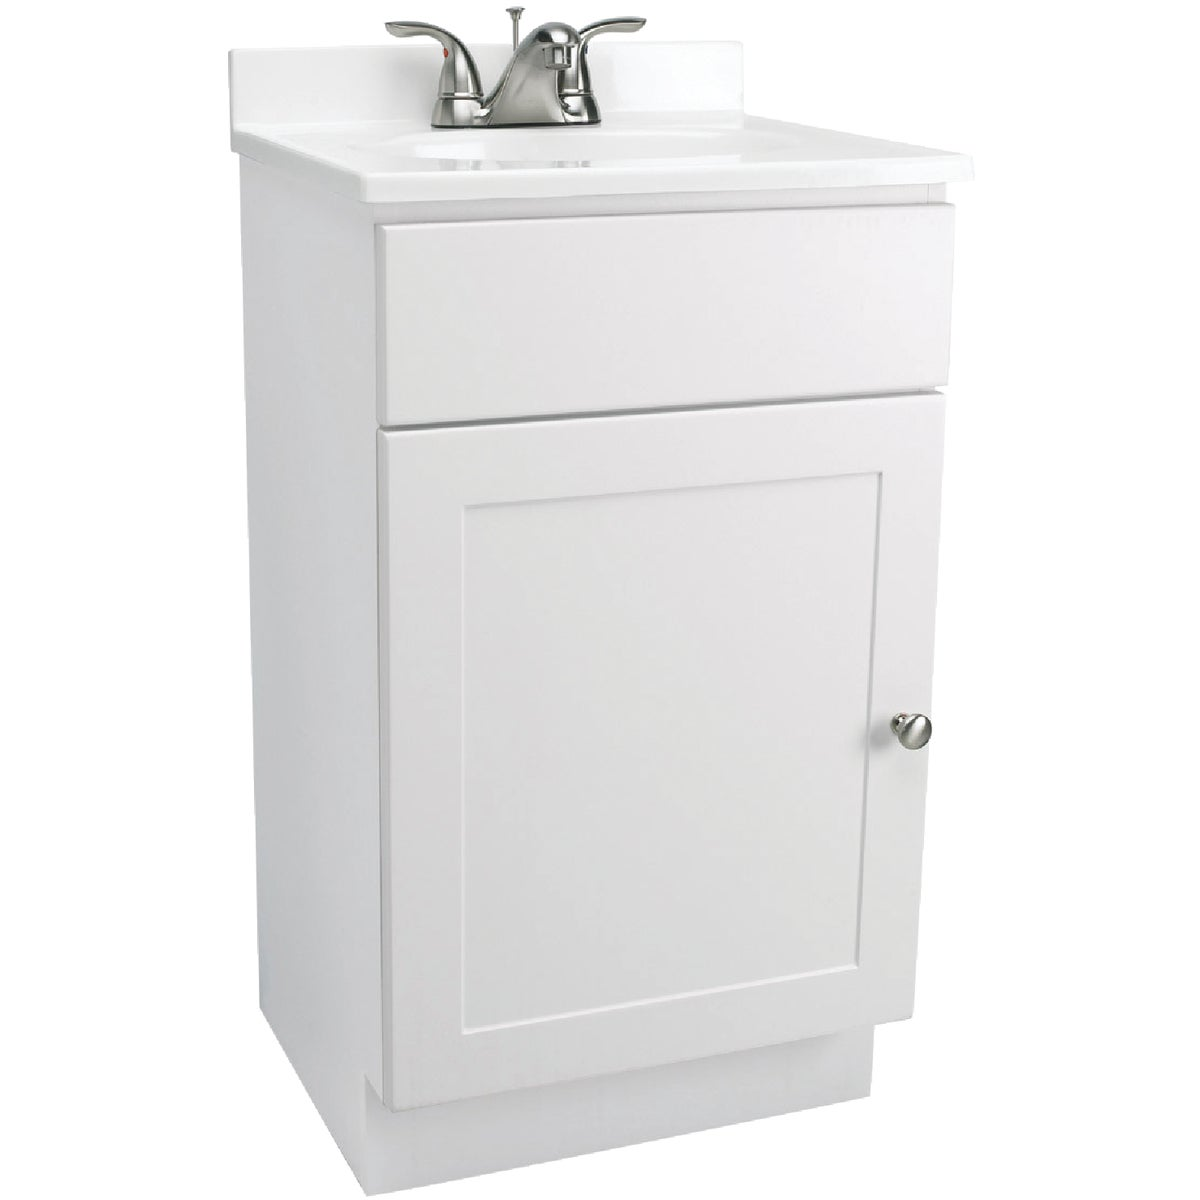 WHITE COMBO VANITY - 541599 by Design House  Dhi